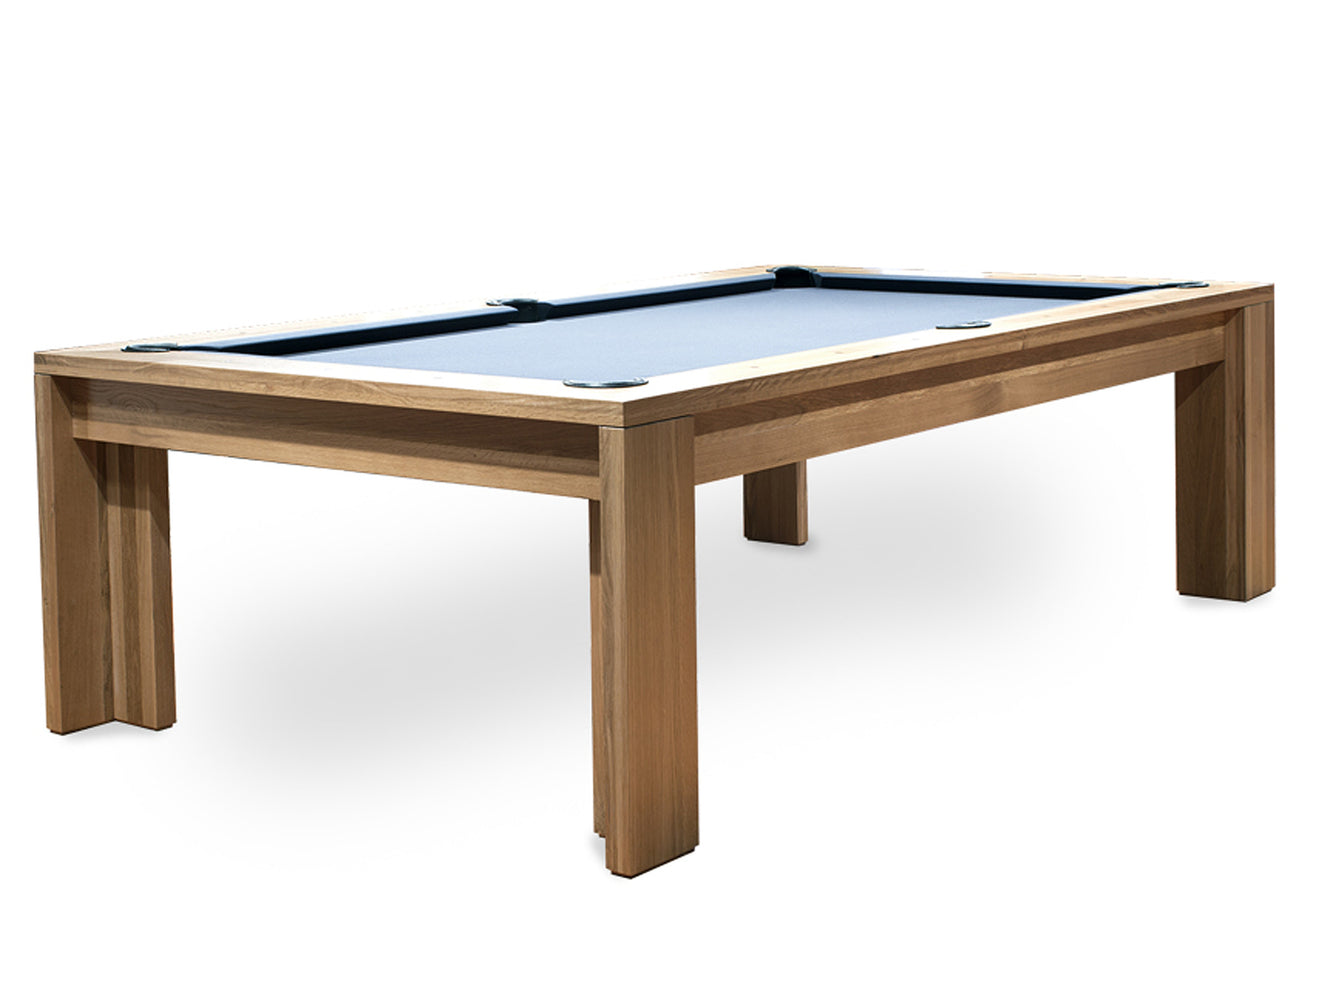 California House District Pool Table Rustic White Oak